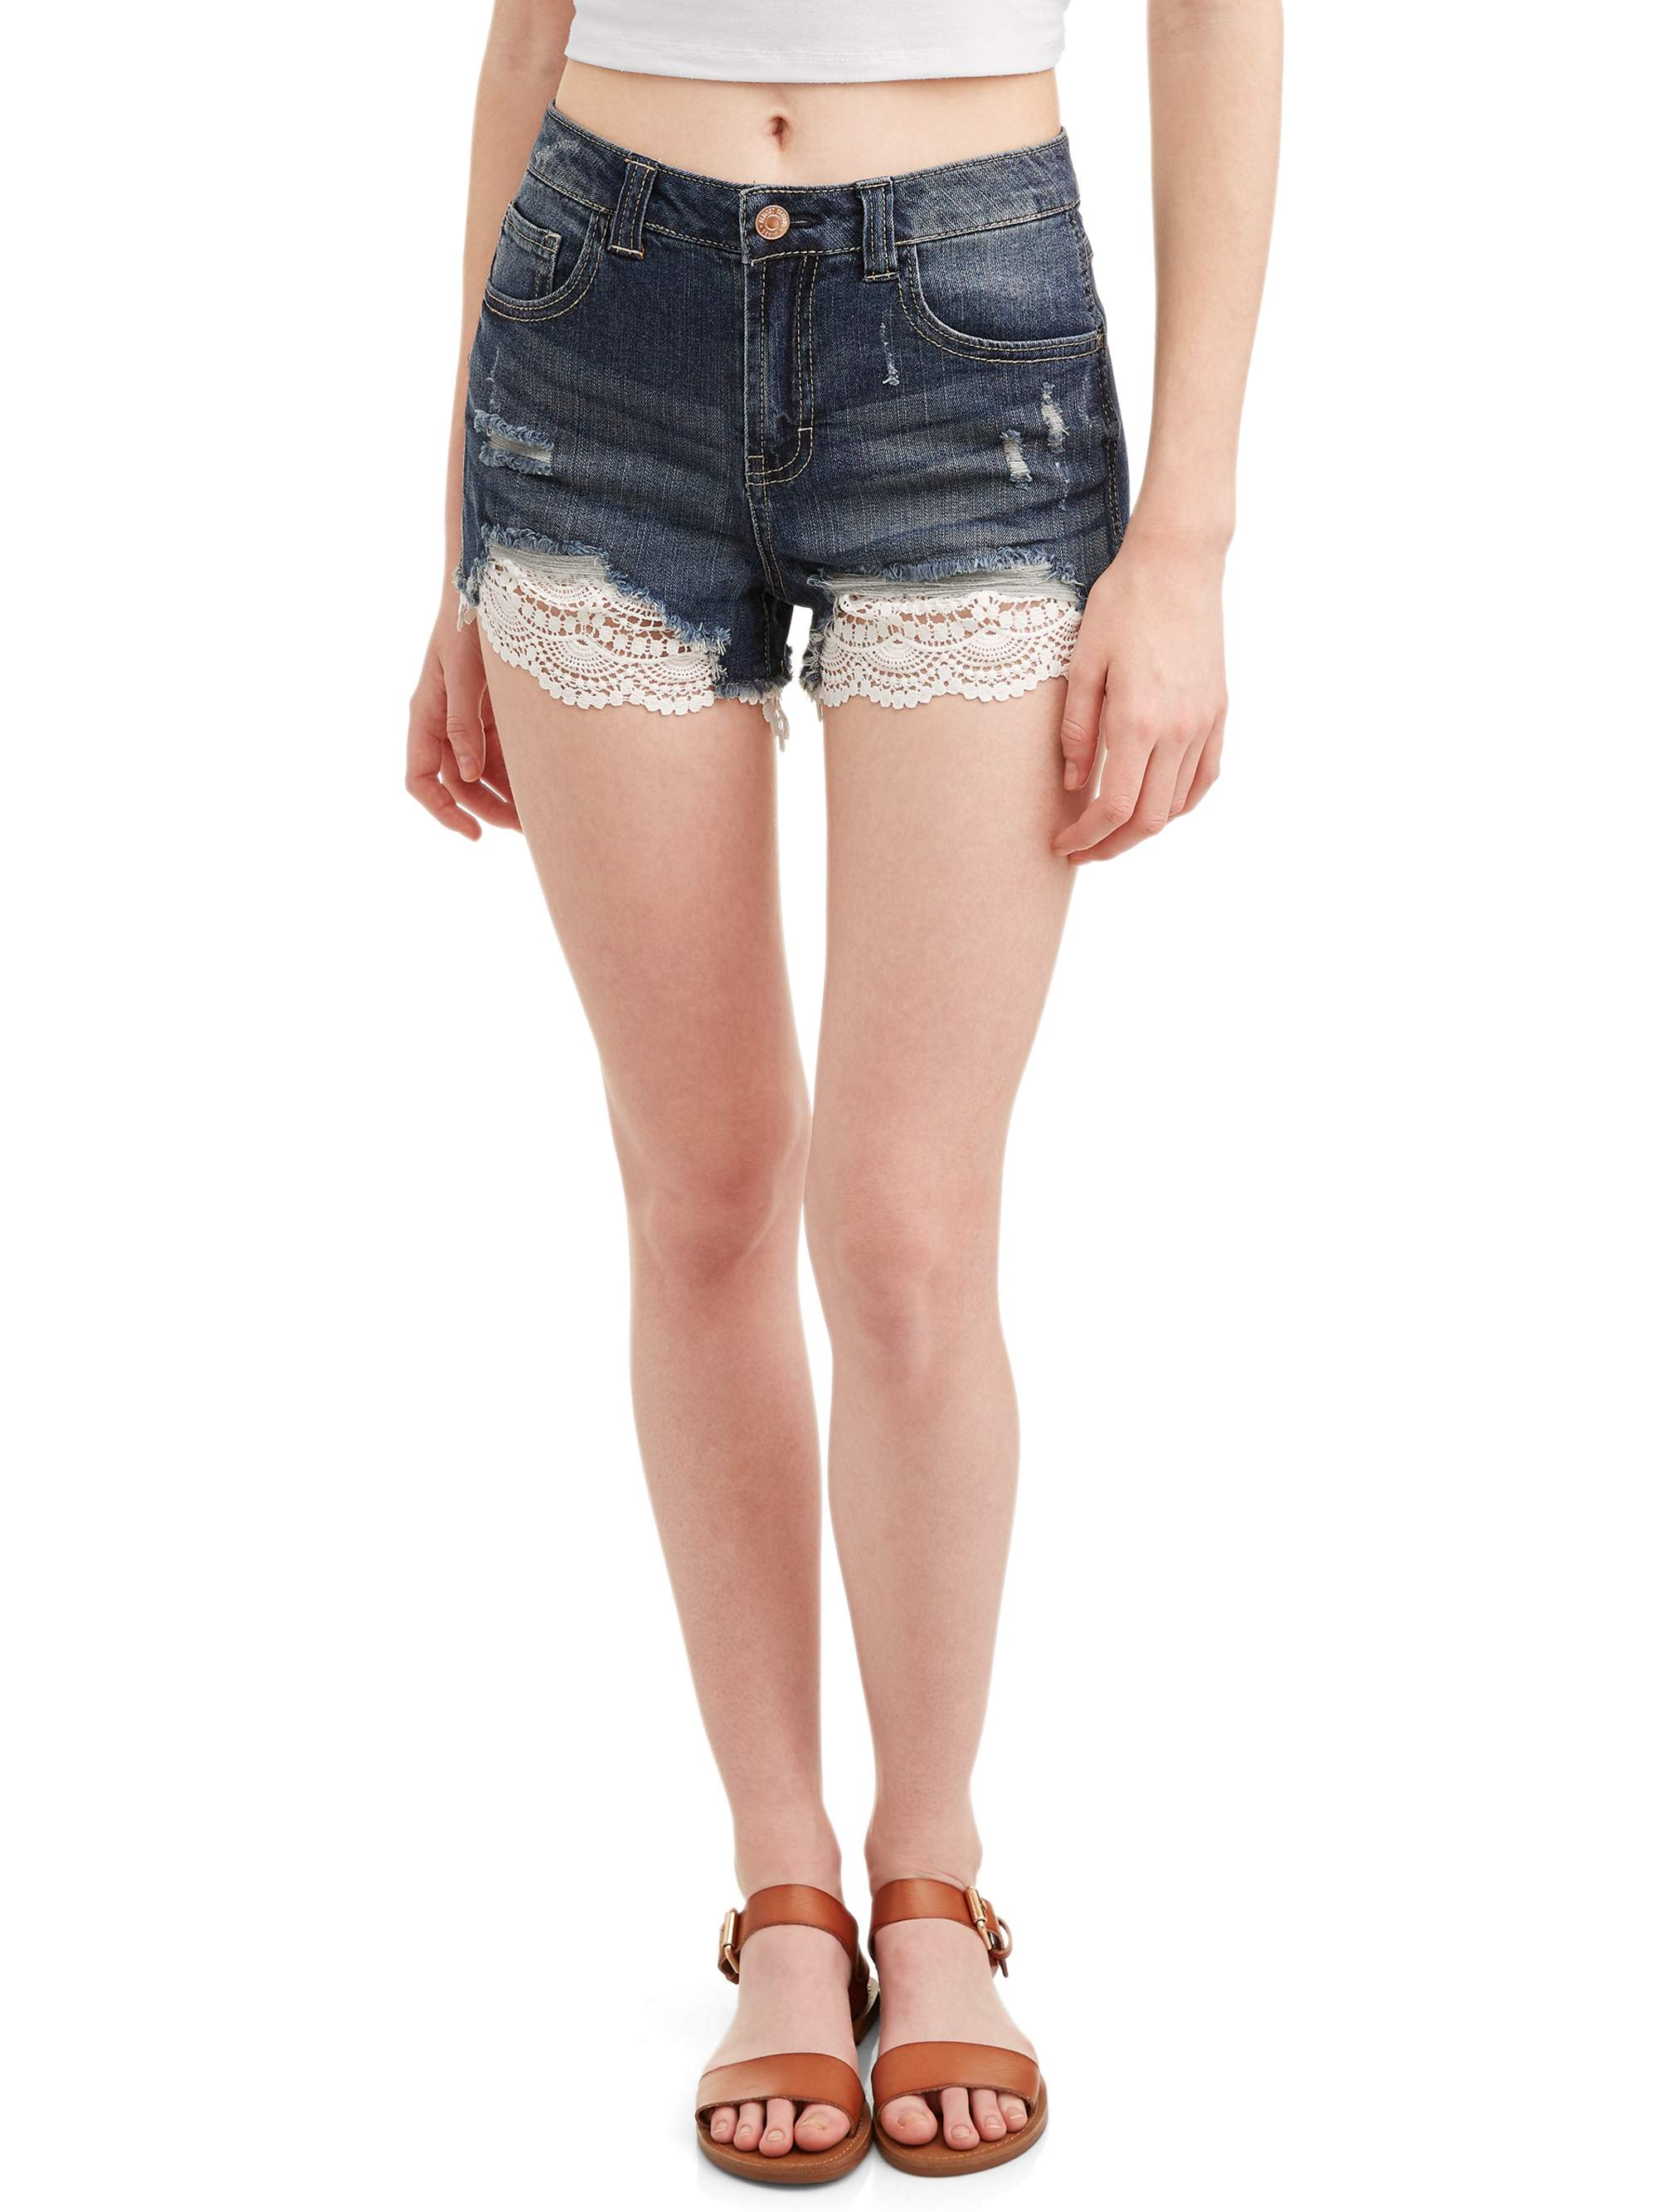 Almost Famous Juniors Crochet Lace Trim Denim Shorts Walmartcom